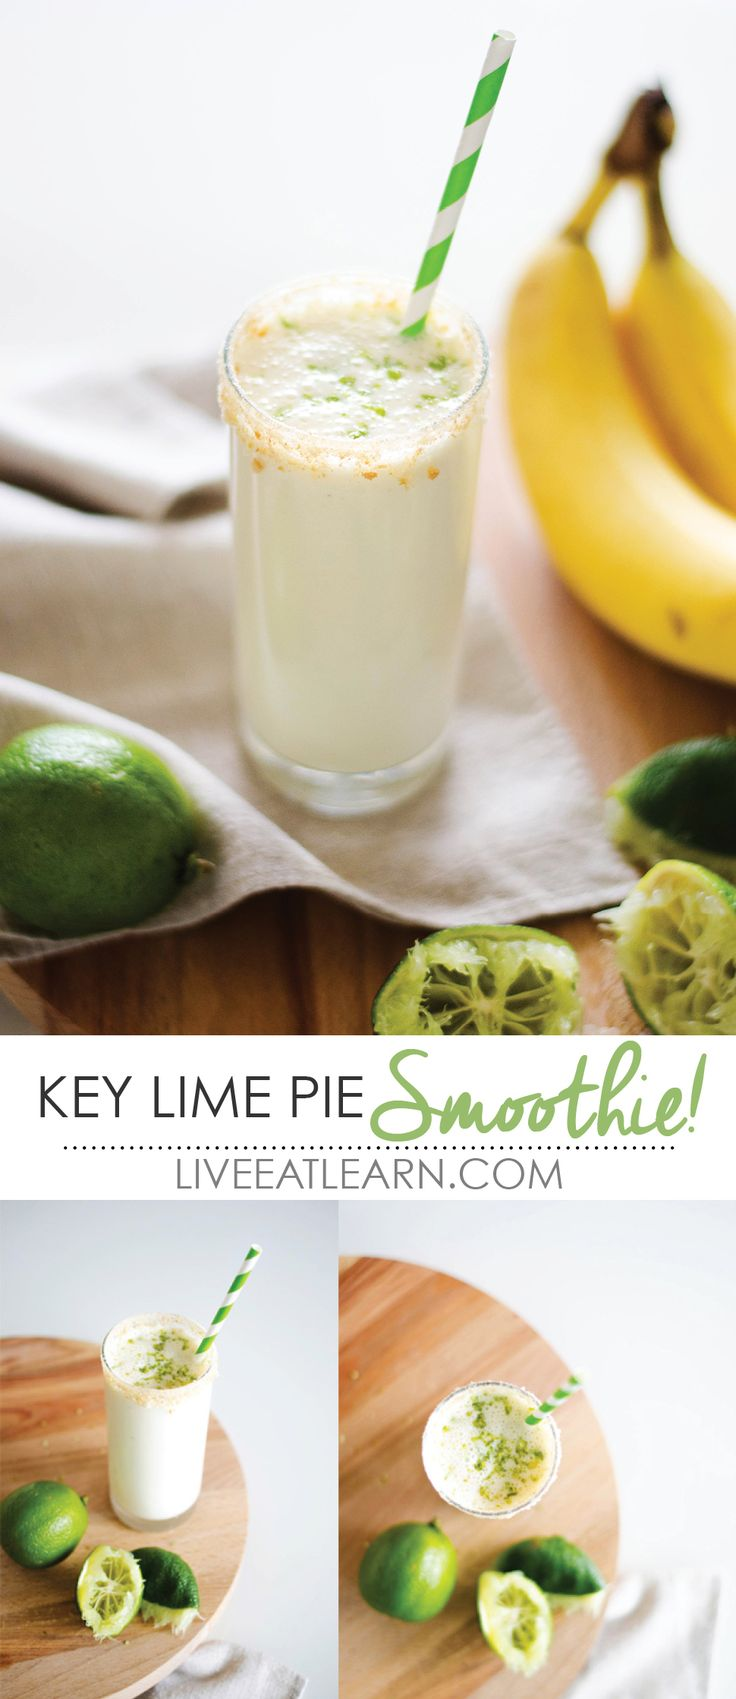 This key lime pie smoothie recipe is creamy, tangy, and a healthy breakfast to start your day! With fresh lime juice, Greek yogurt, banana, and vanilla, this smoothie combines decadent dessert flavor with healthy morning nutrition! Sponsored by @The Florida Keys and Key West in partnership with @Honest Cooking // Live Eat Learn